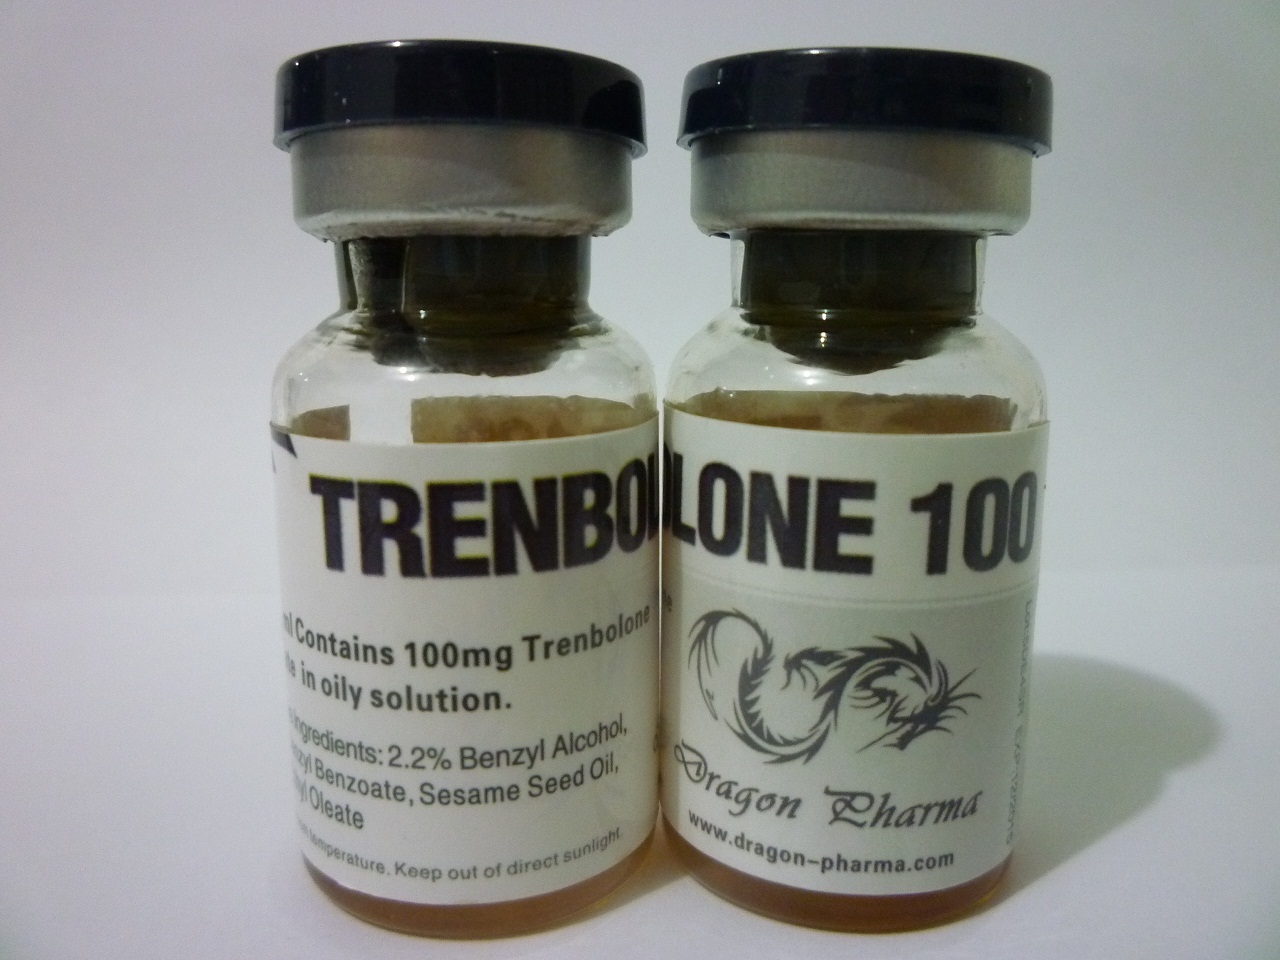 Trenbolone 100 Dragon Pharma